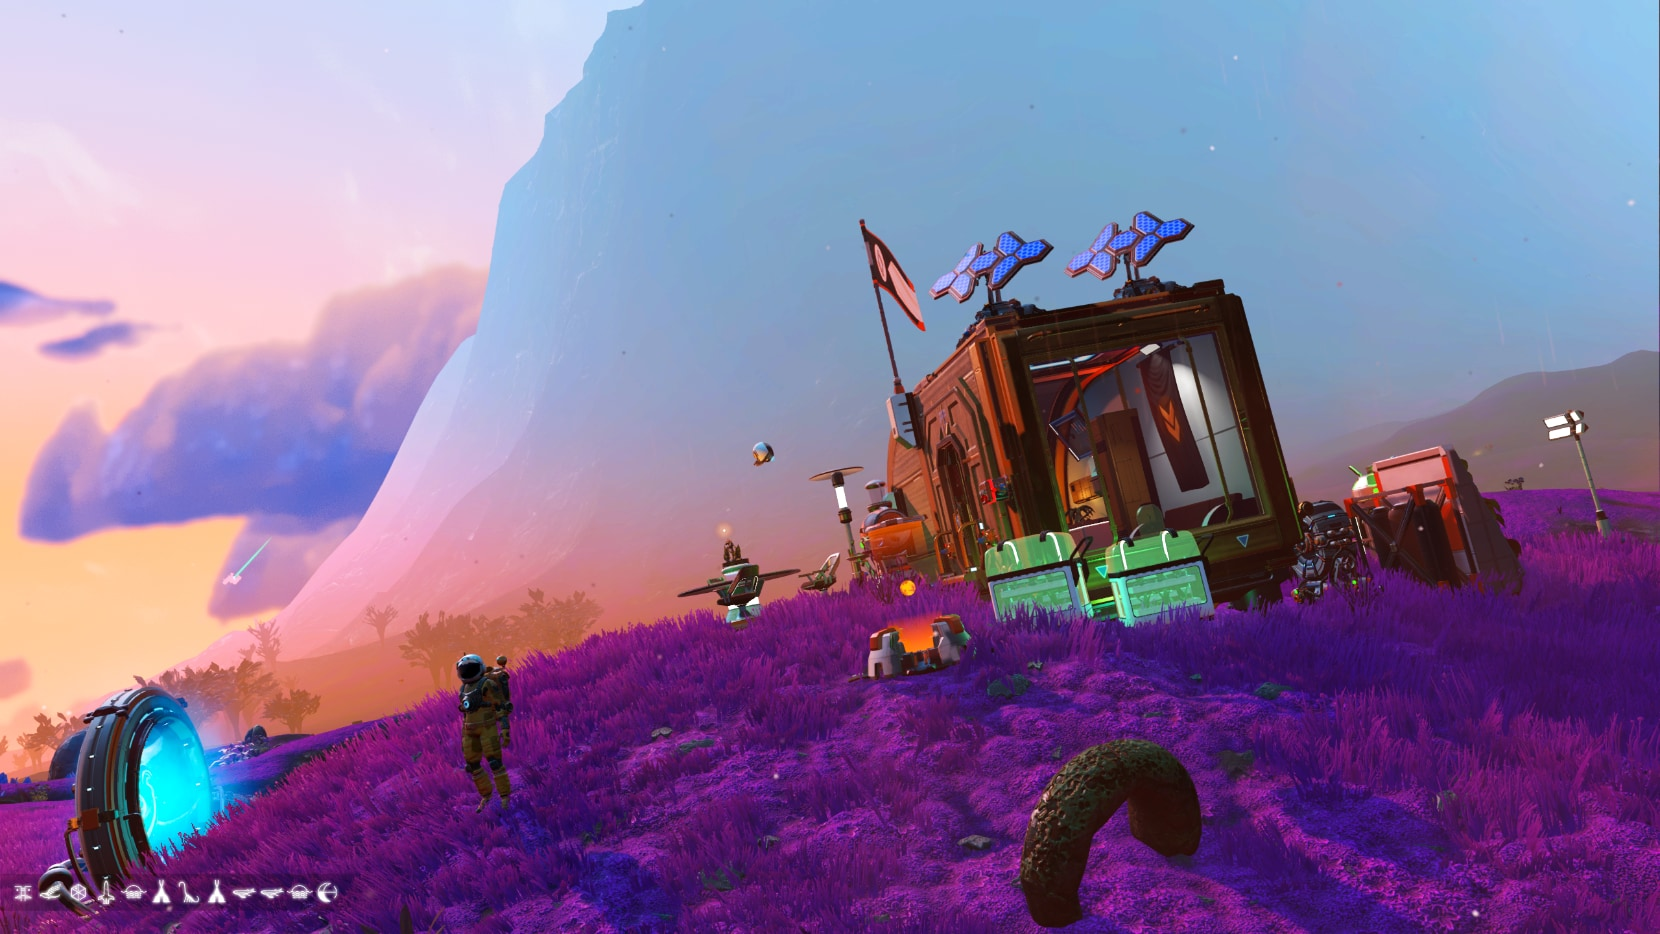 Two-room tiny house on a purple, lush world with a mountain looming in the backgdrop